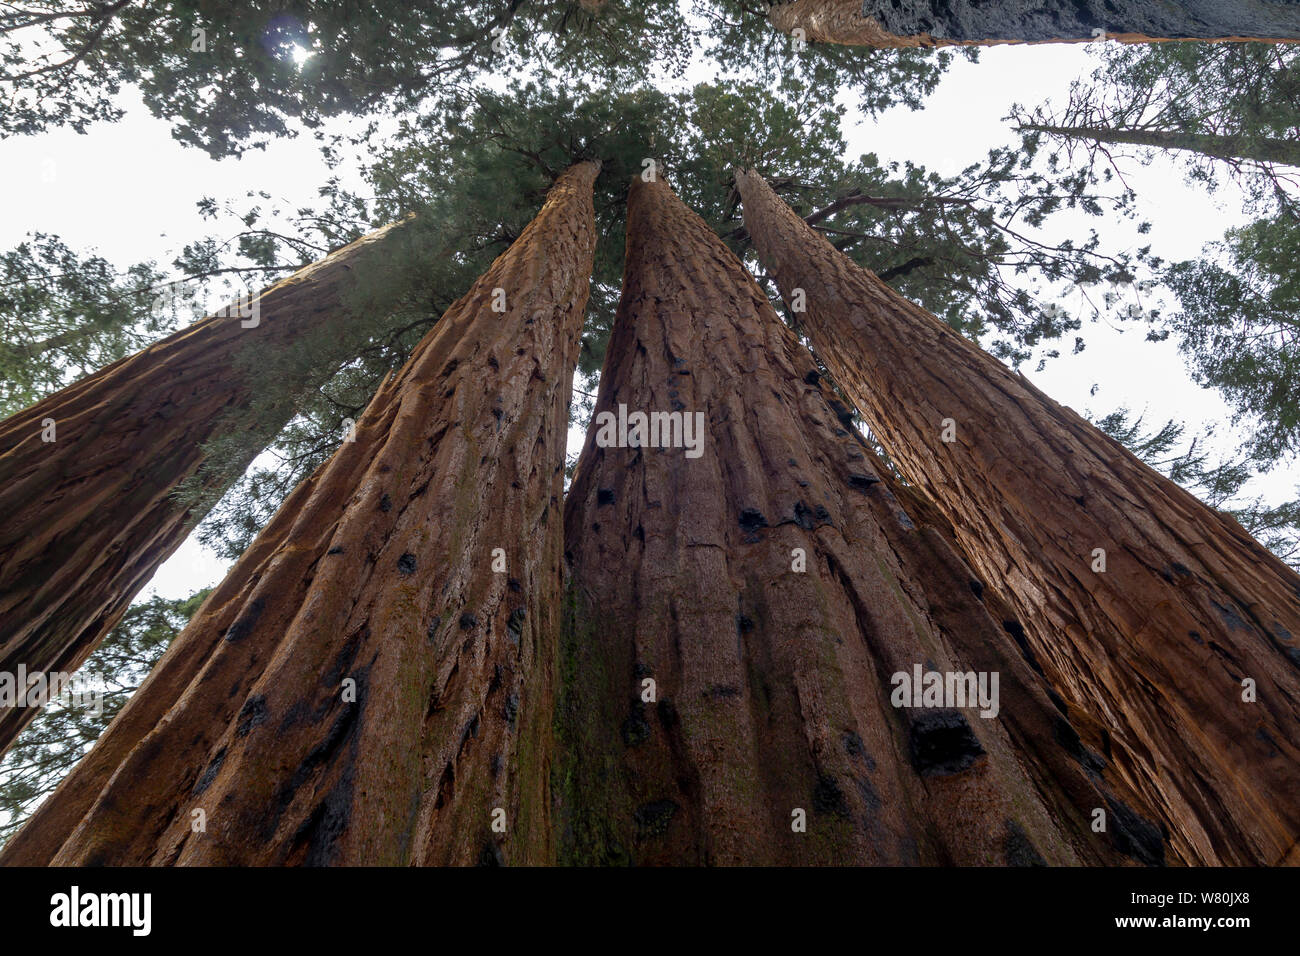 Low angle shot of giant sequoias in Sequoia National Park, United States Stock Photo